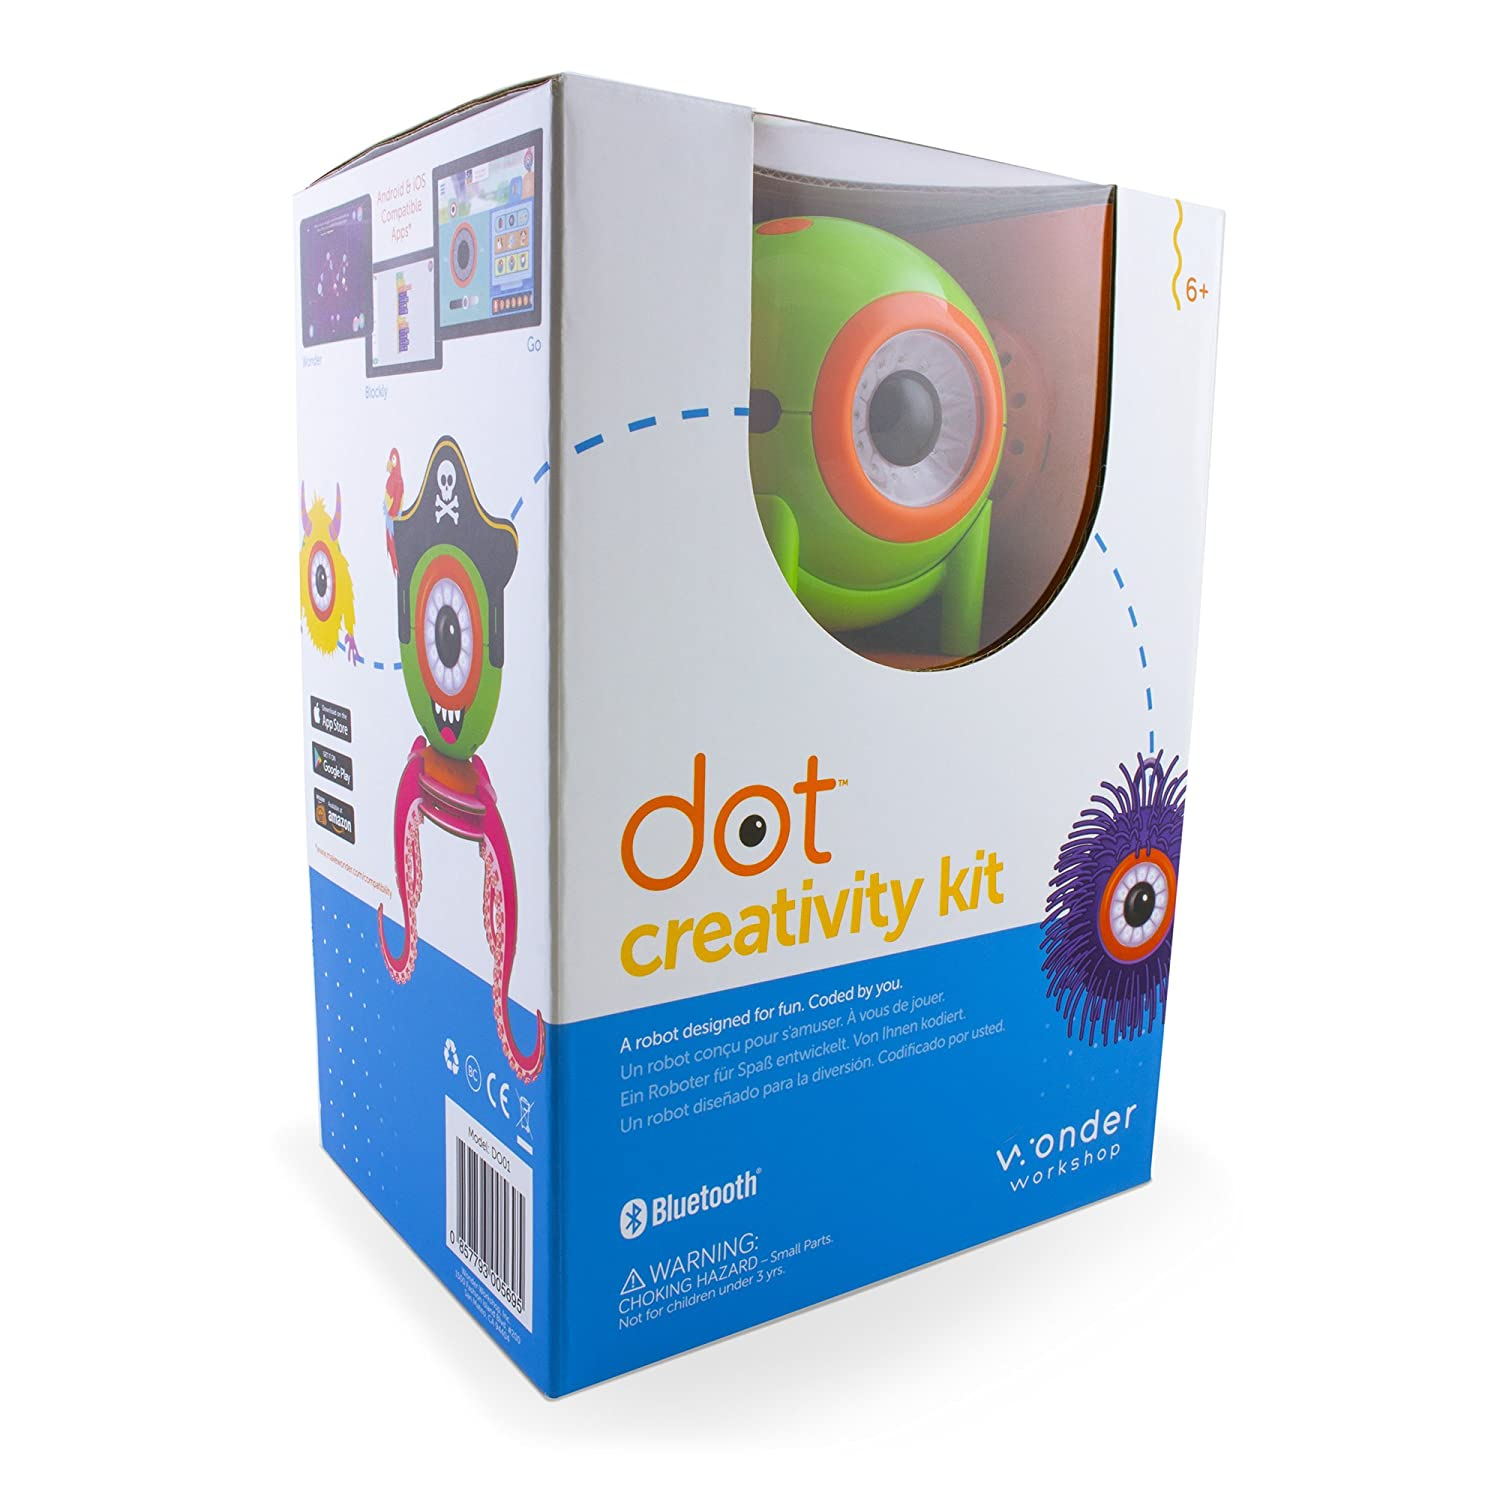 Wonder Workshop Dot Creativity Kit Robot DT01-12